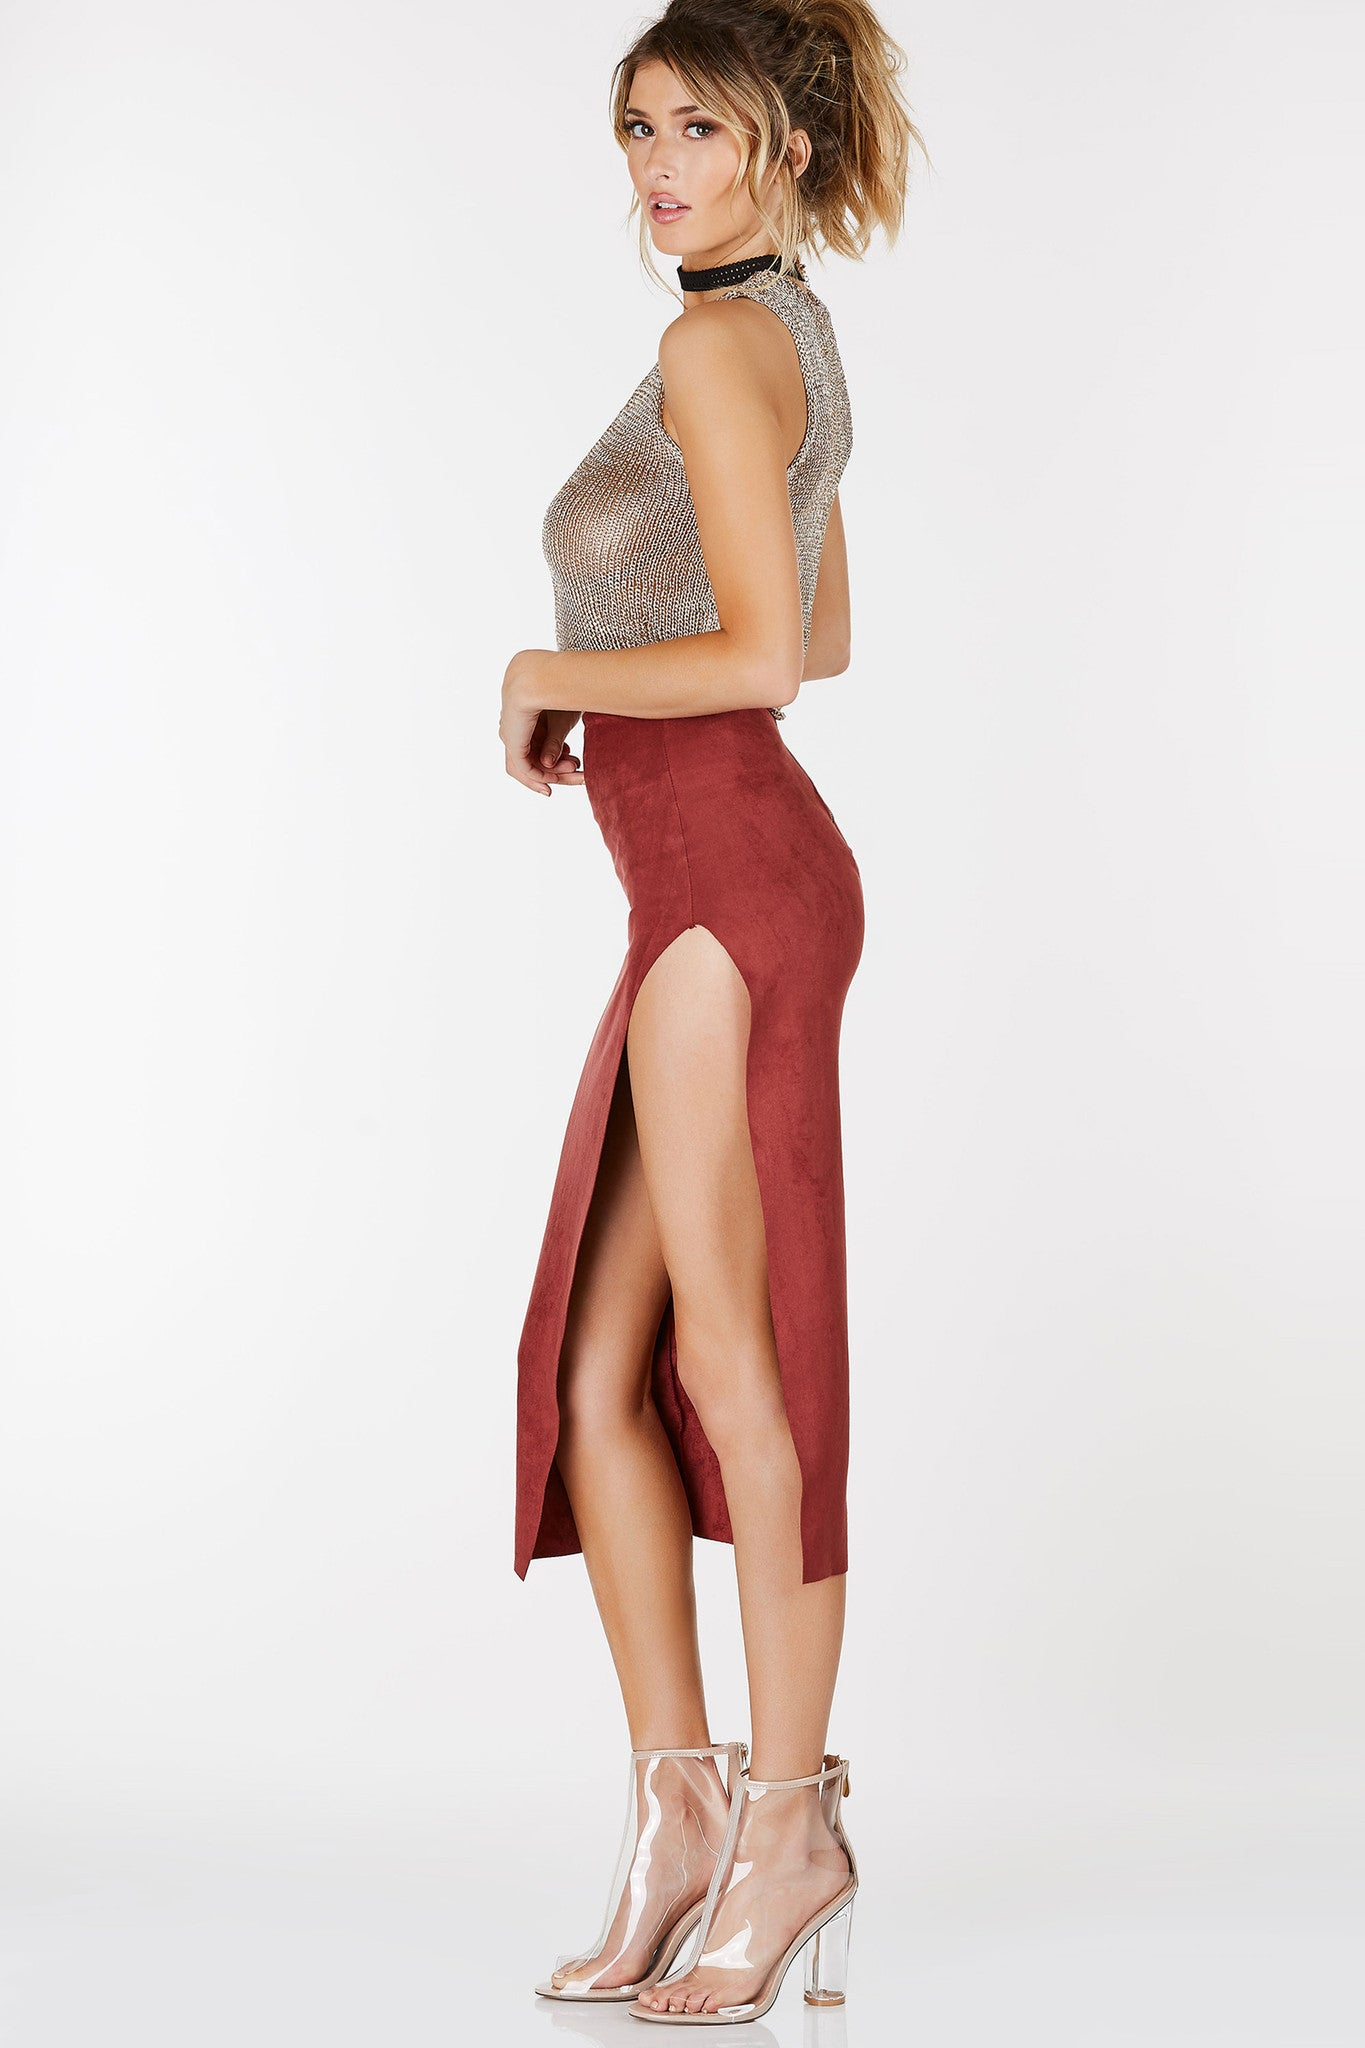 Lightweight midi skirt with suede finish. High slit with back zip closure.